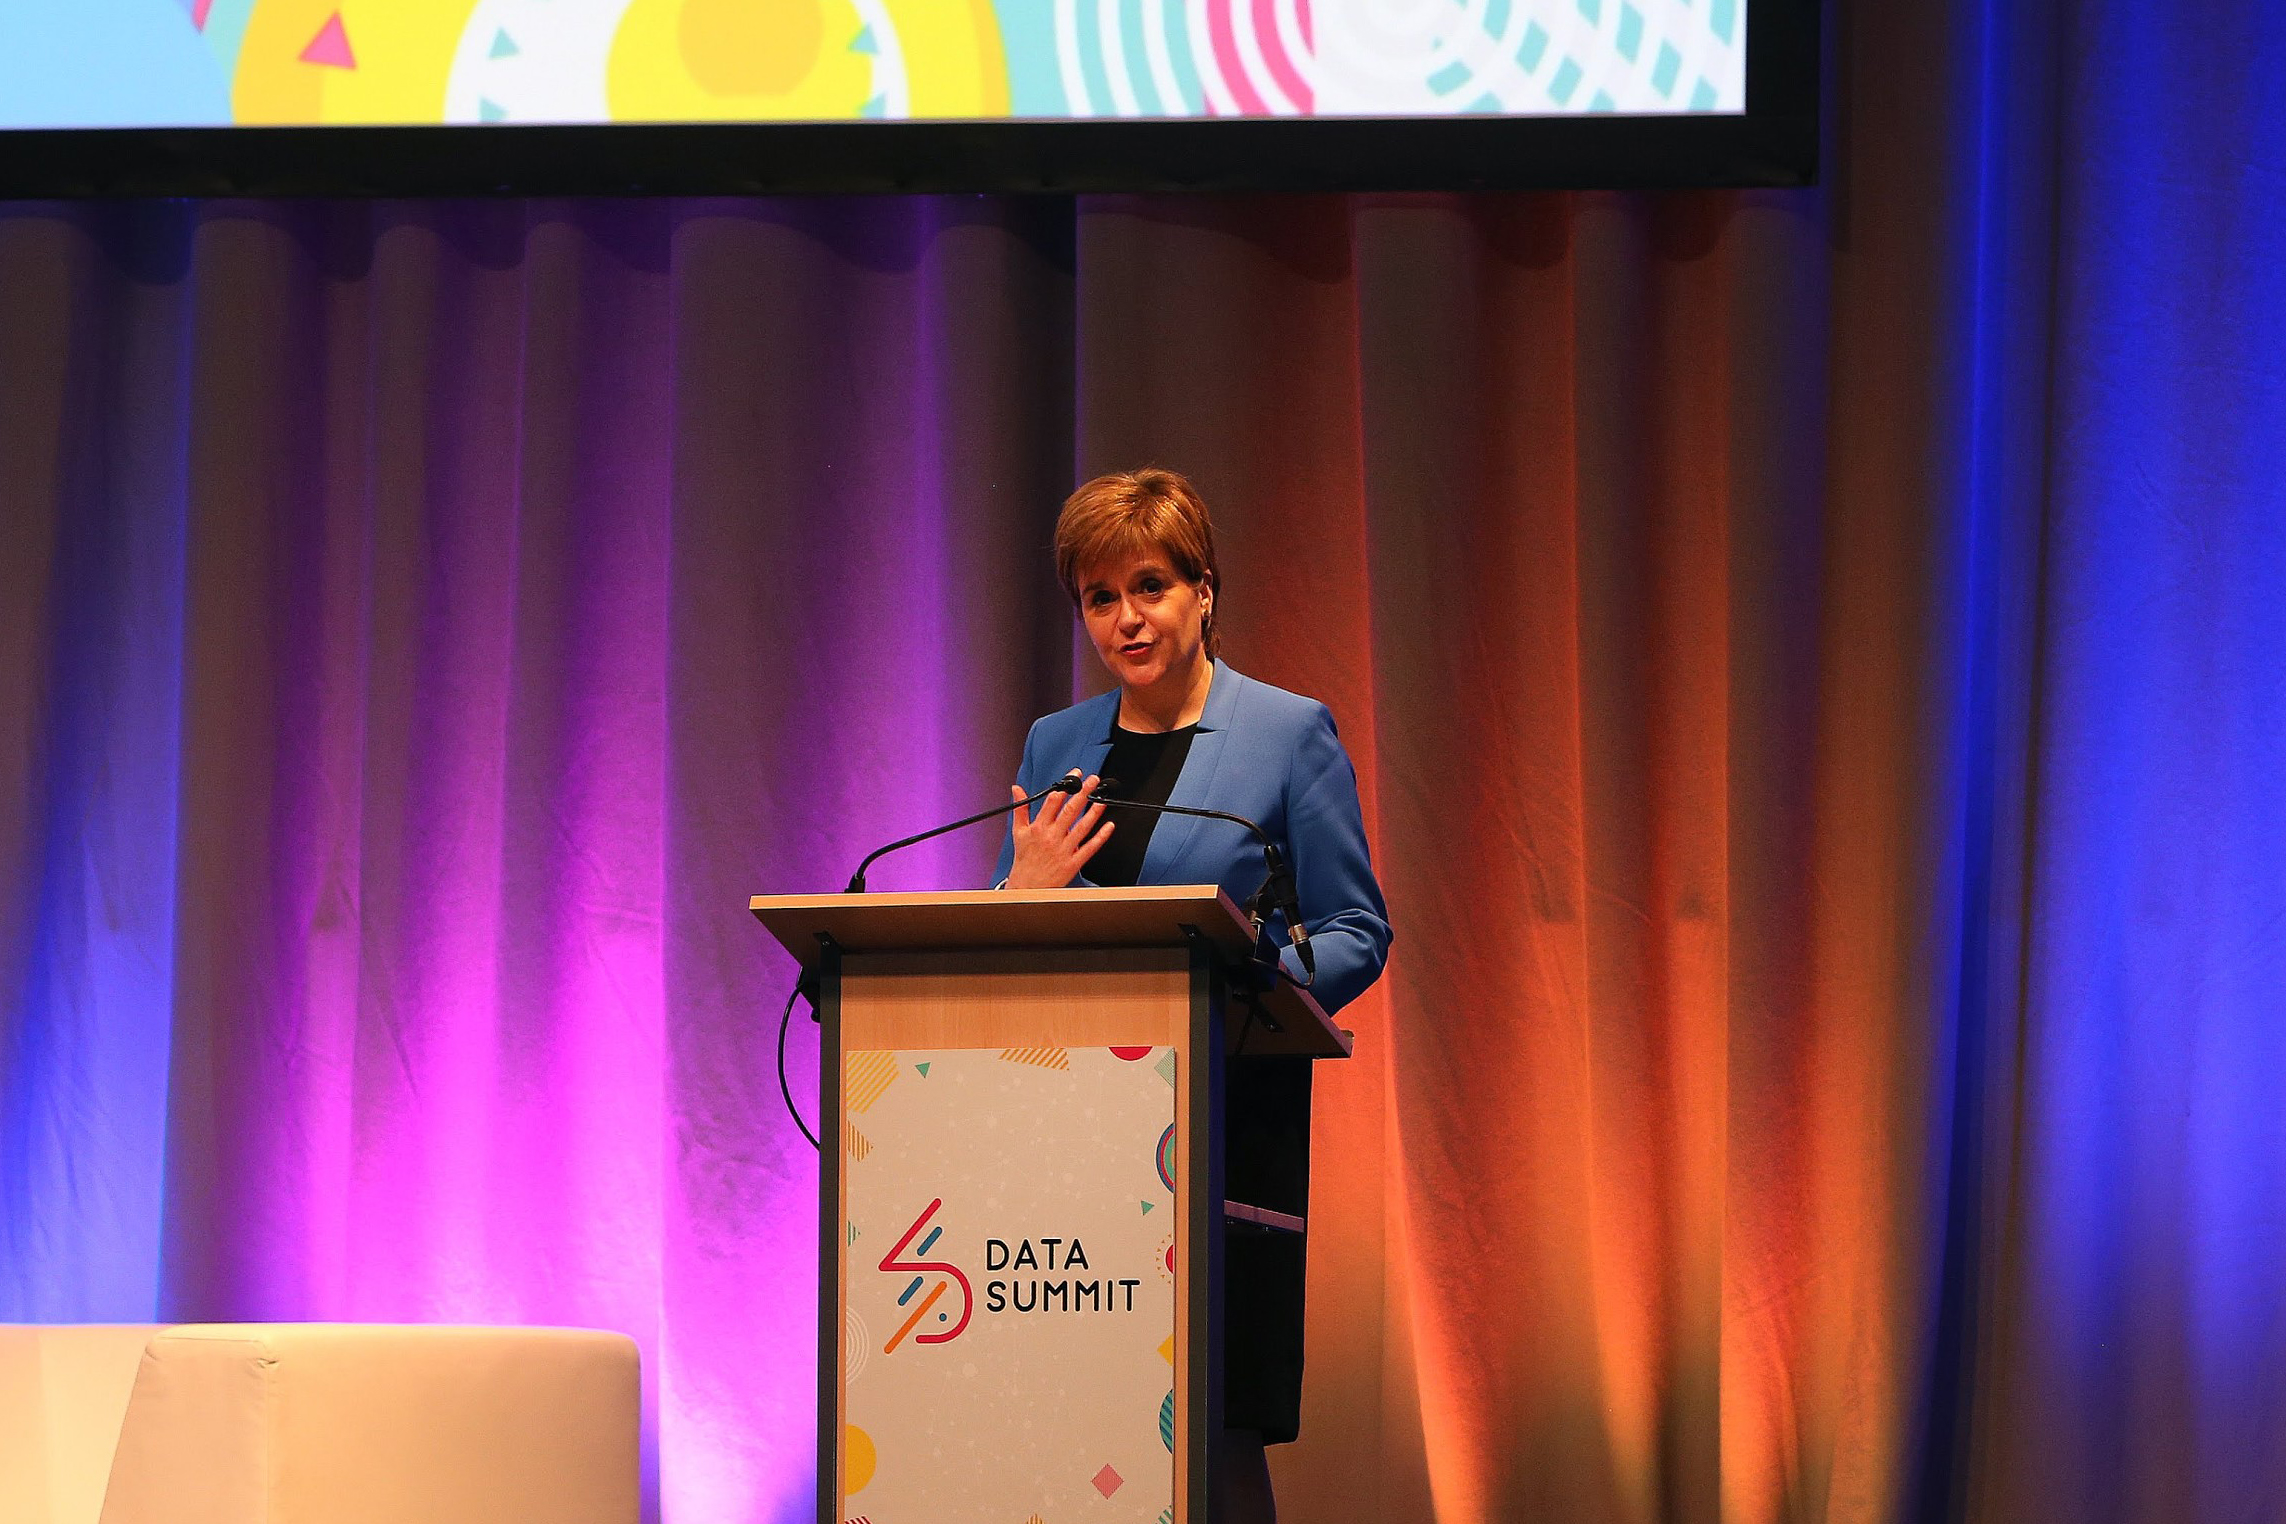 Data Summit day 1 at the Assembly Rooms Edinburgh; First Minister Nicola Sturgeon at the Data Summit.